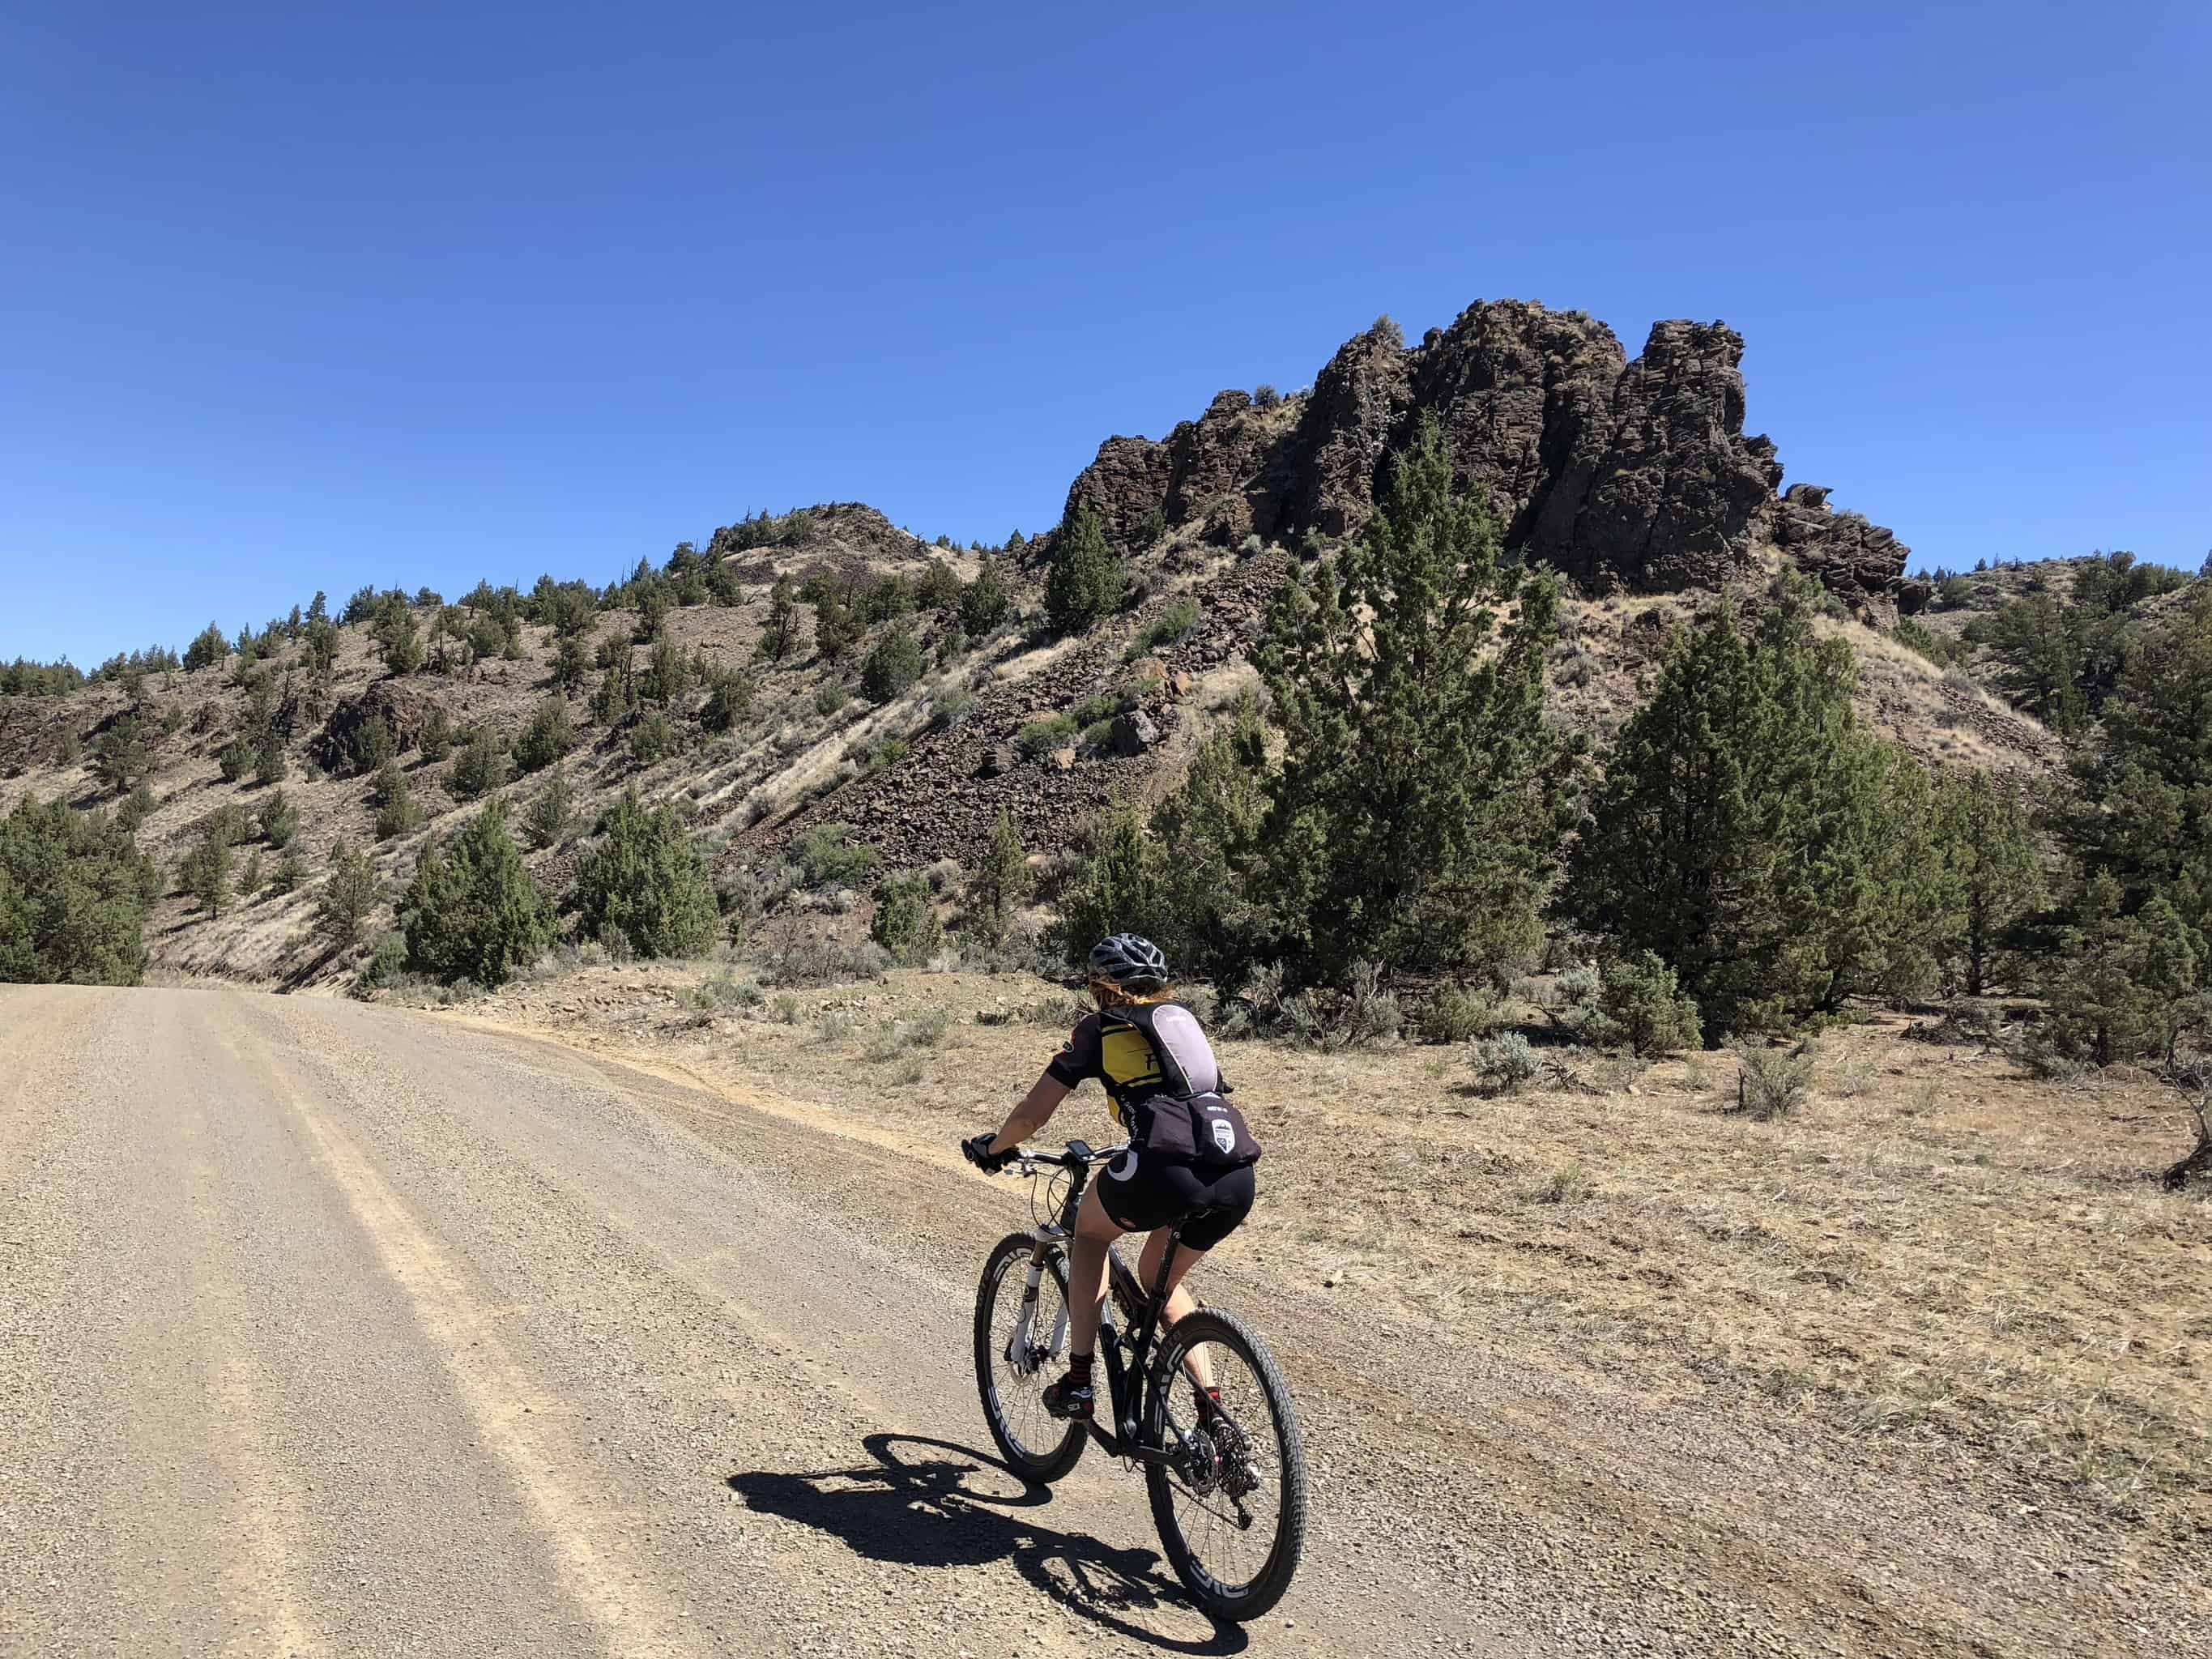 A rocky butte along the only gravel highway in Oregon, Highway 27.